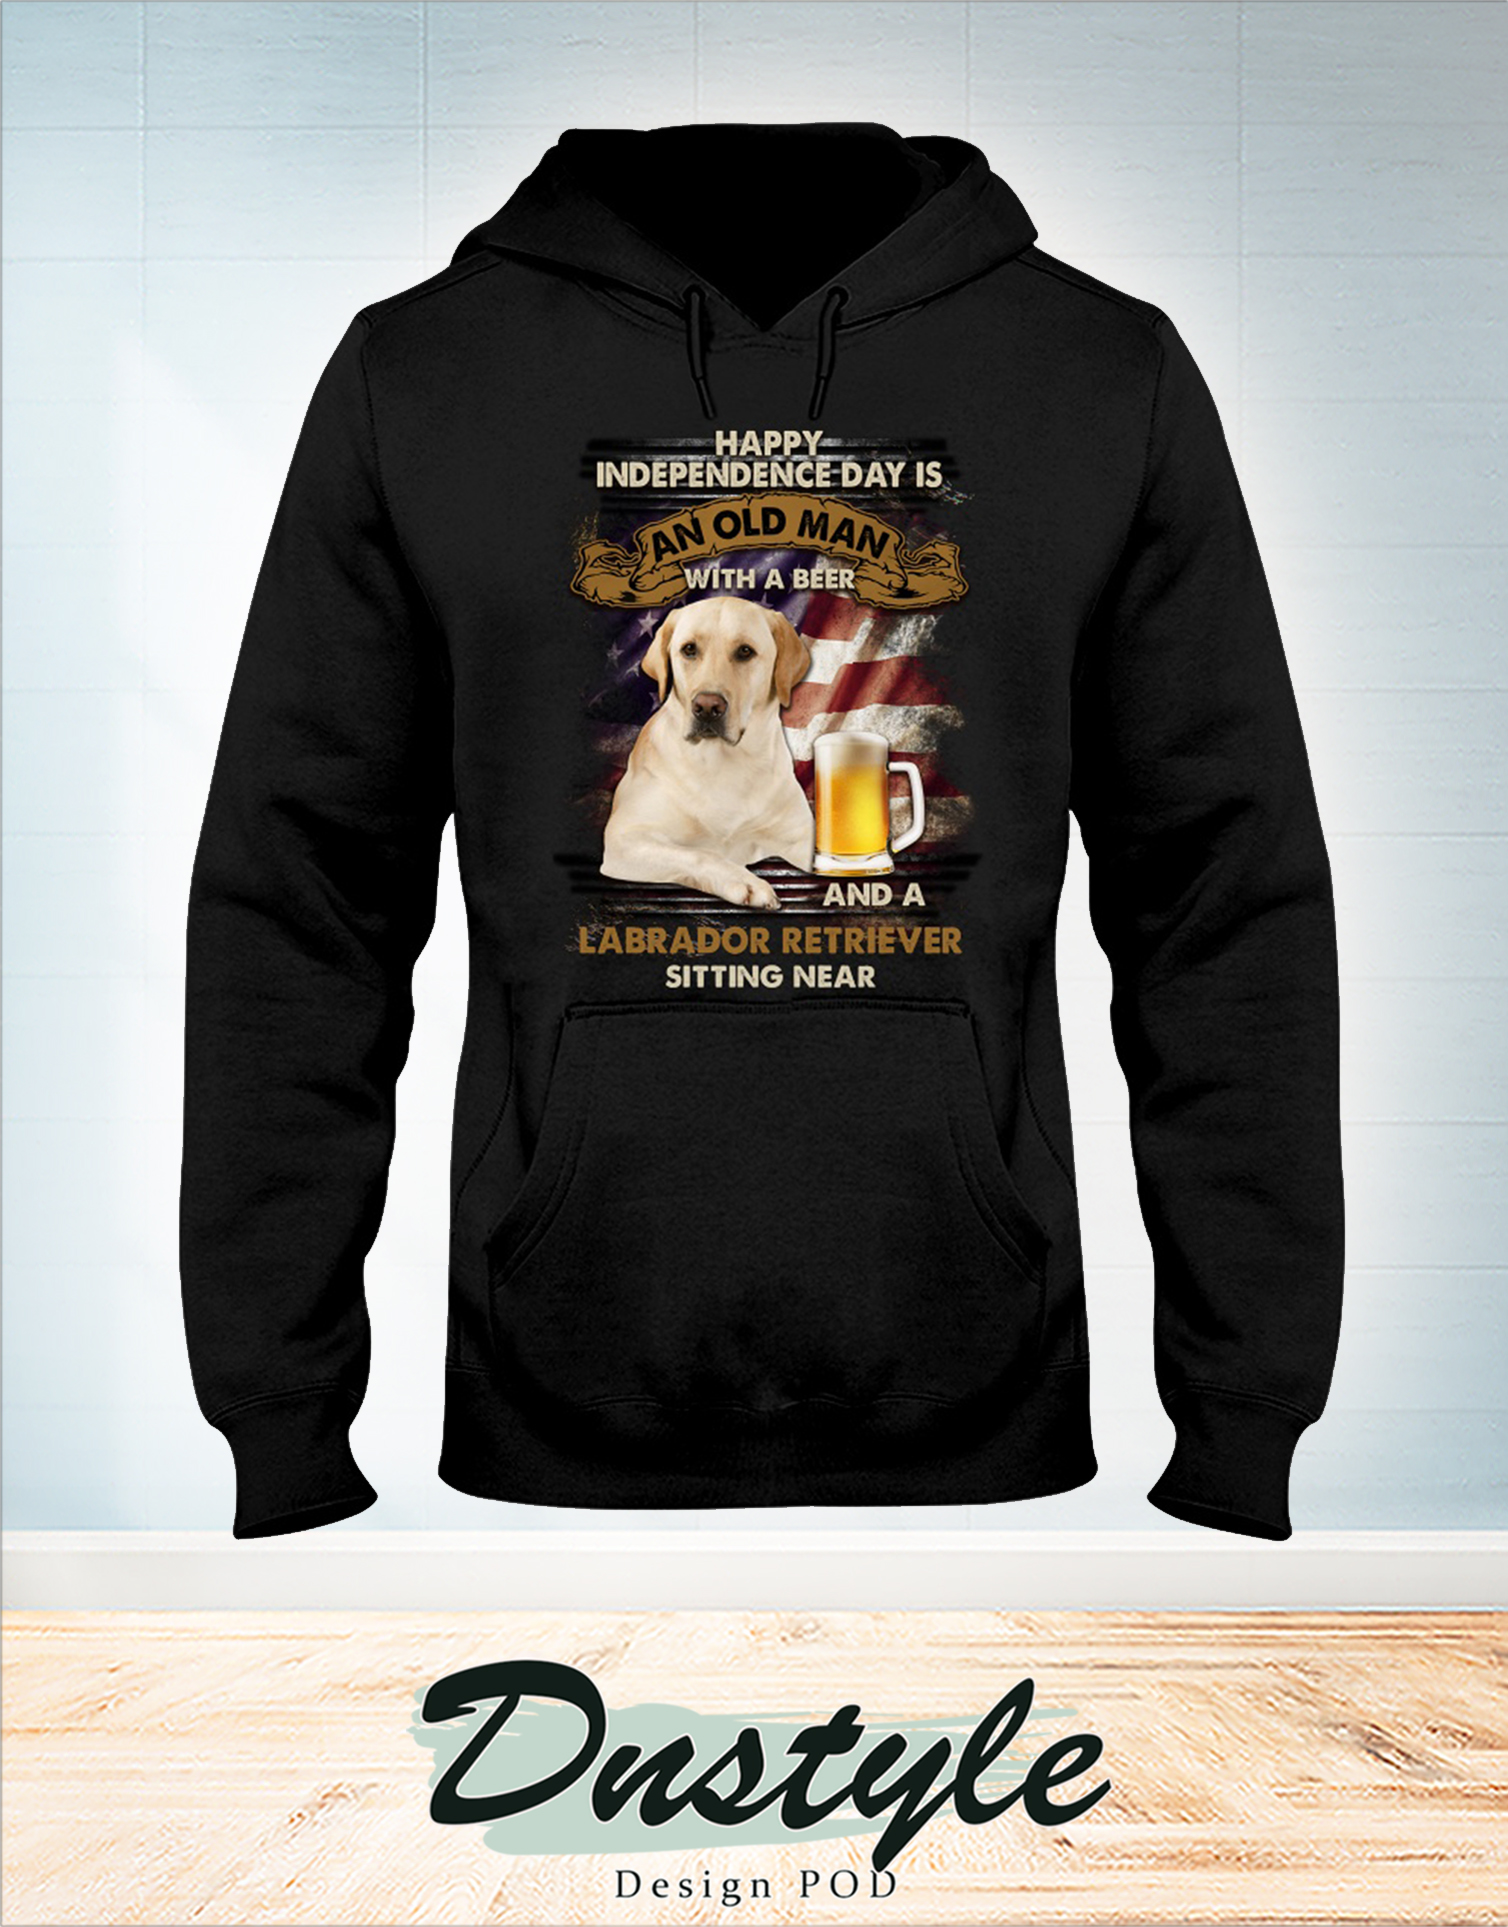 Happy independence day is an old man with a beer and a Labrador retriever sitting near hoodie